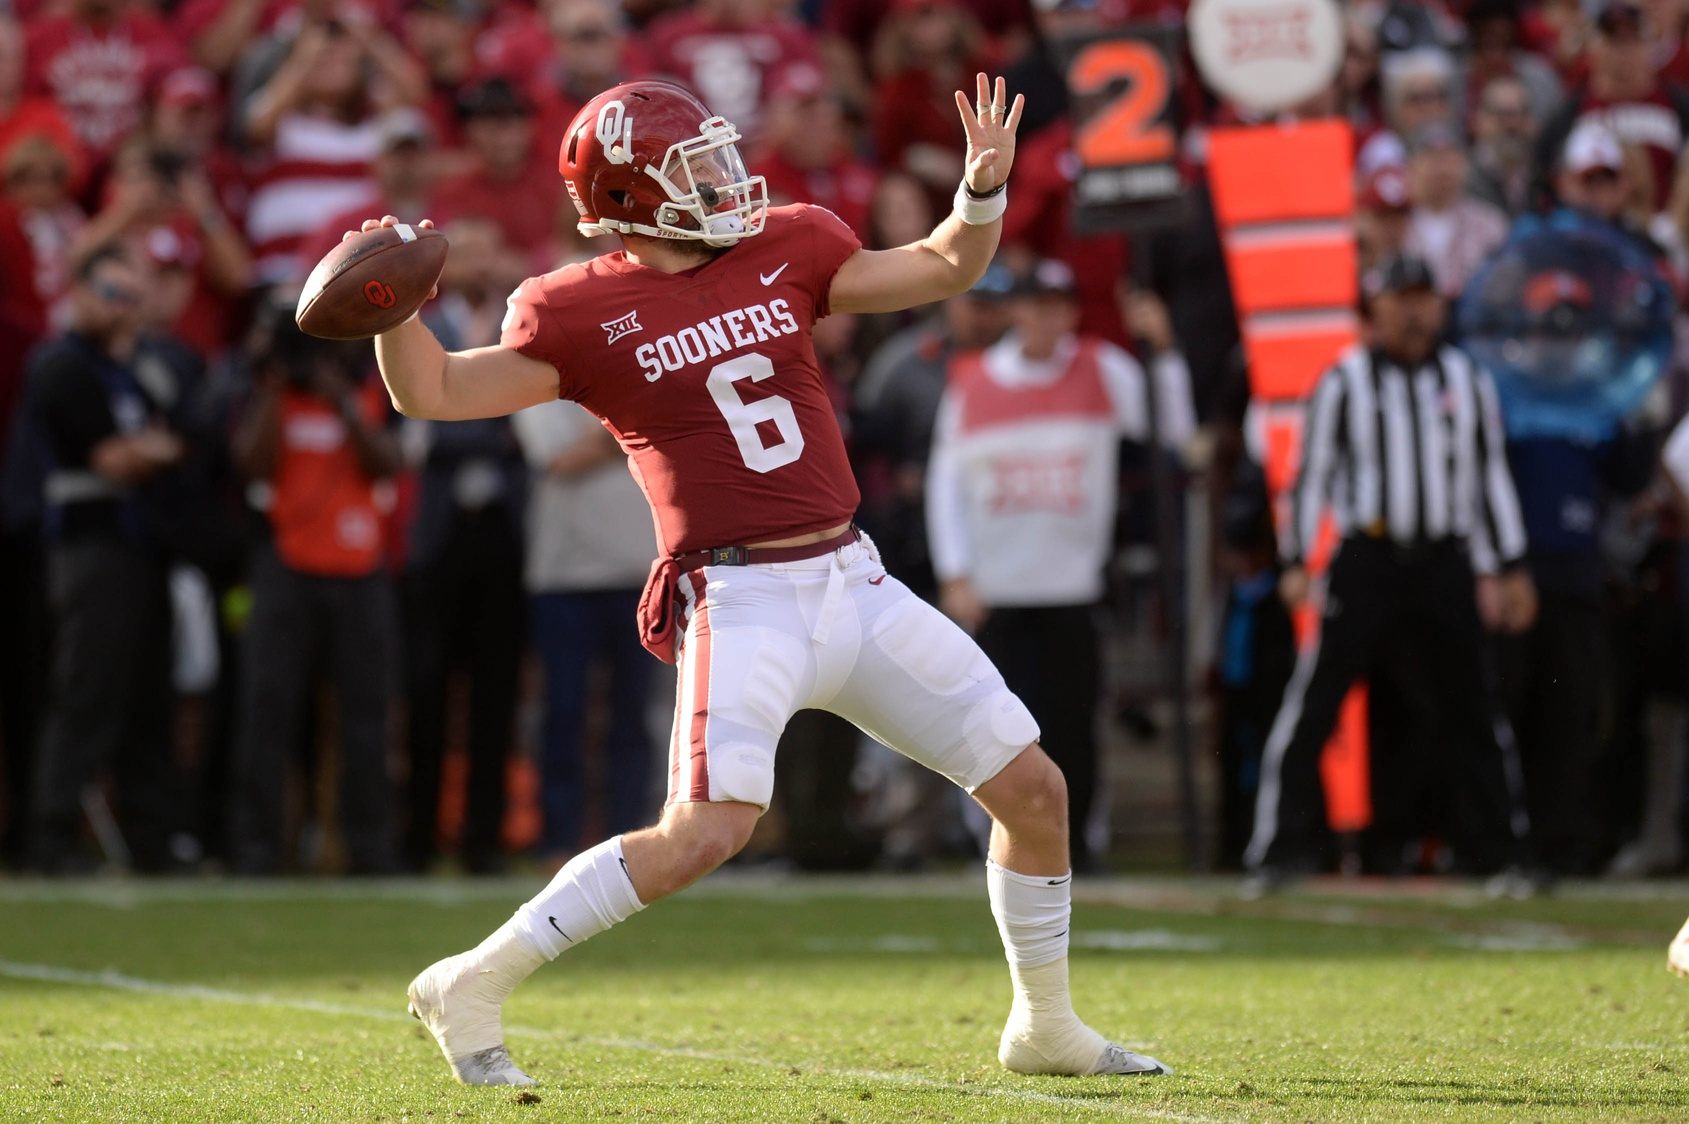 NFL Draft 2018: Top 5 late-round quarterback sleepers